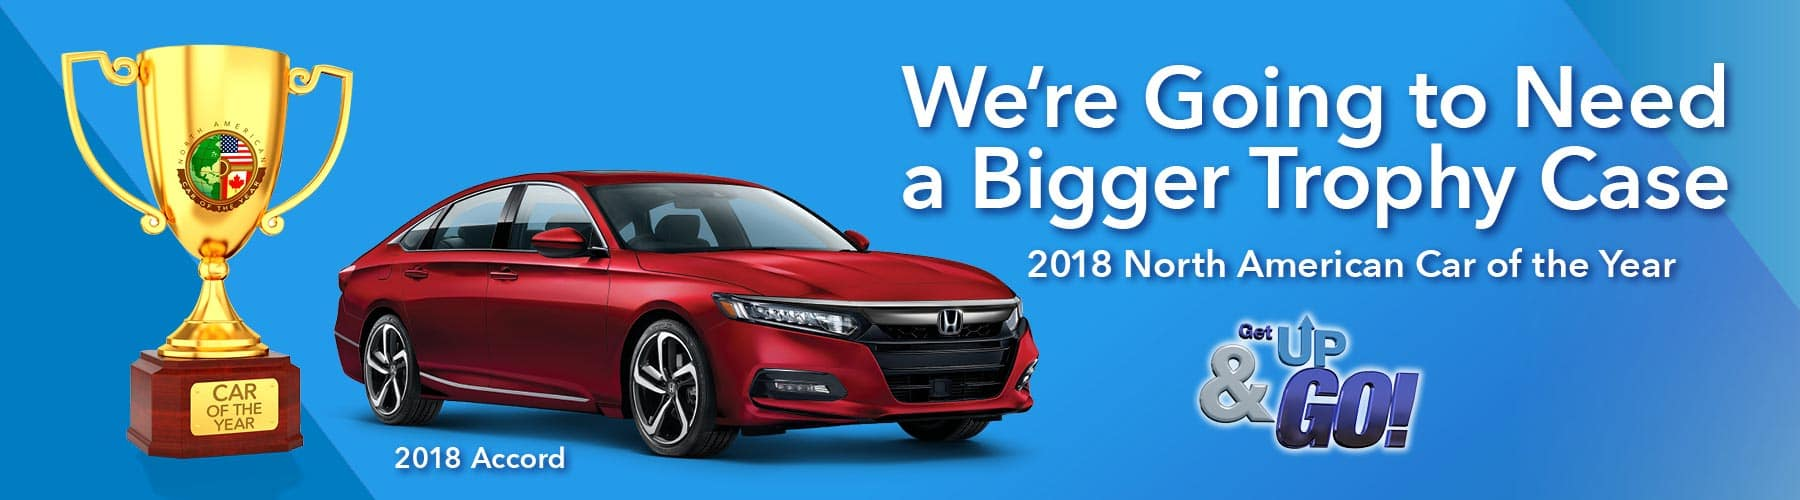 hire carleasing contract for car the honda best lease many personal deals deal one civic leasing pin cars business of use hatchback